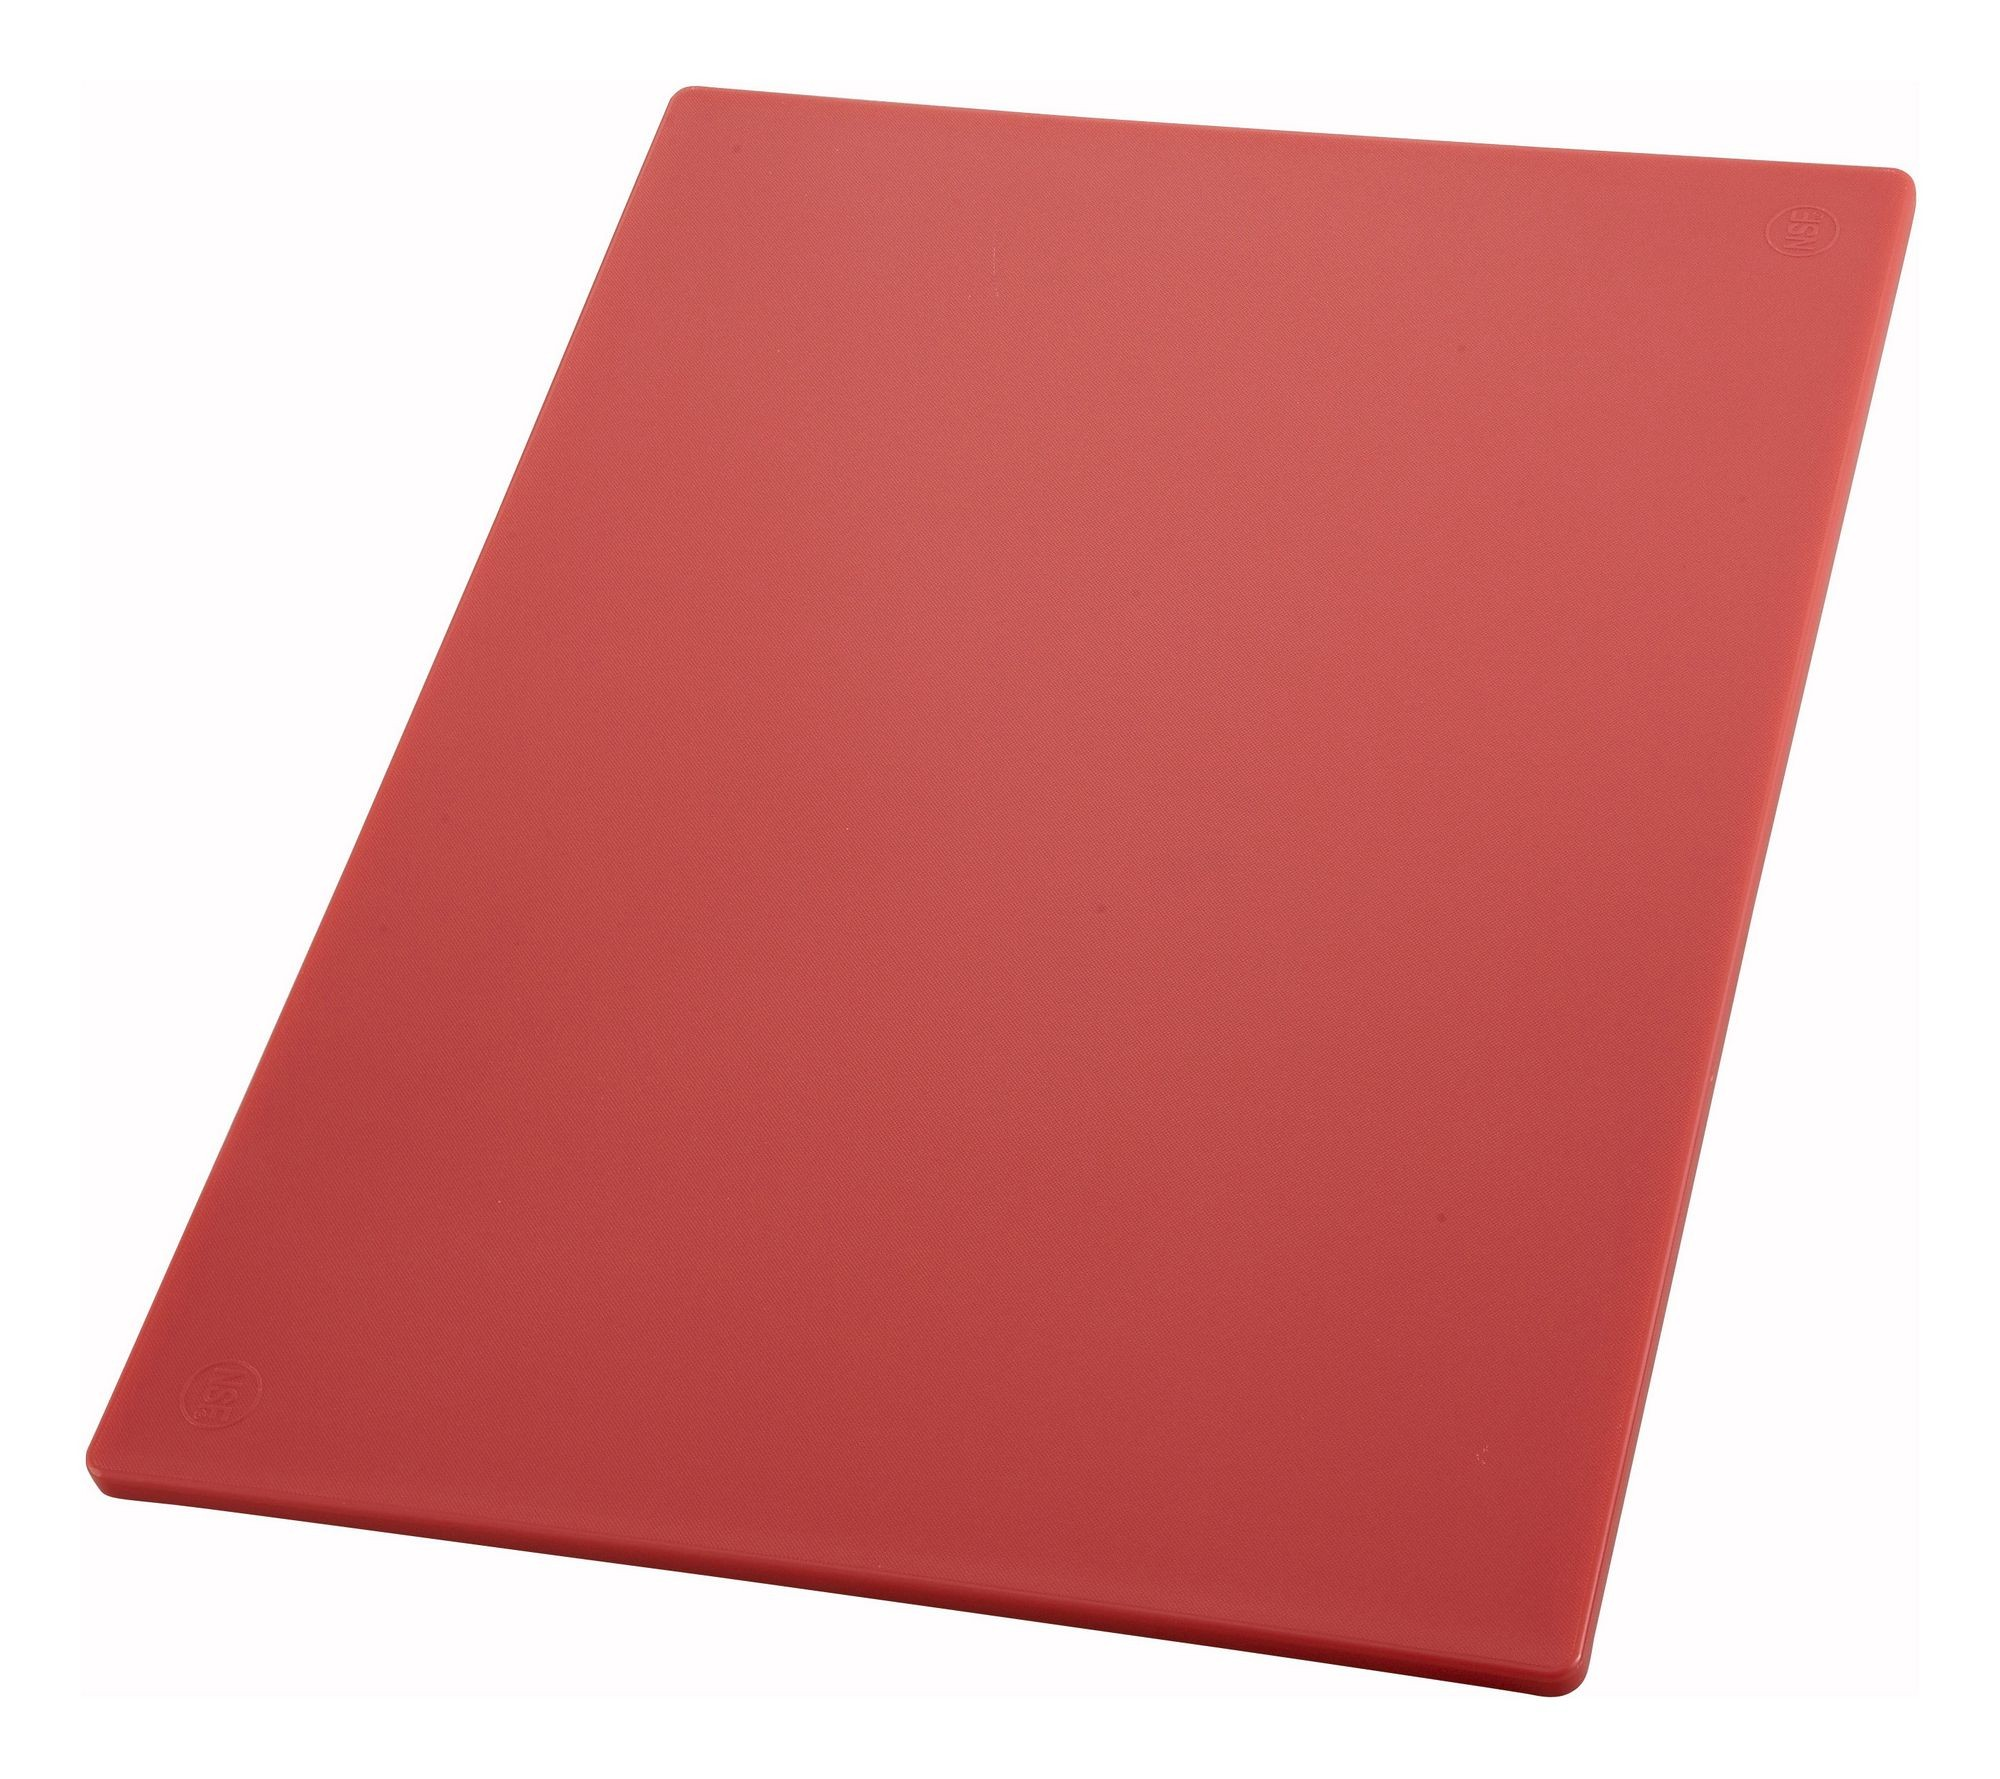 "Winco CBRD-1520 Red Plastic Cutting Board 15"" x 20"" x 1/2"""